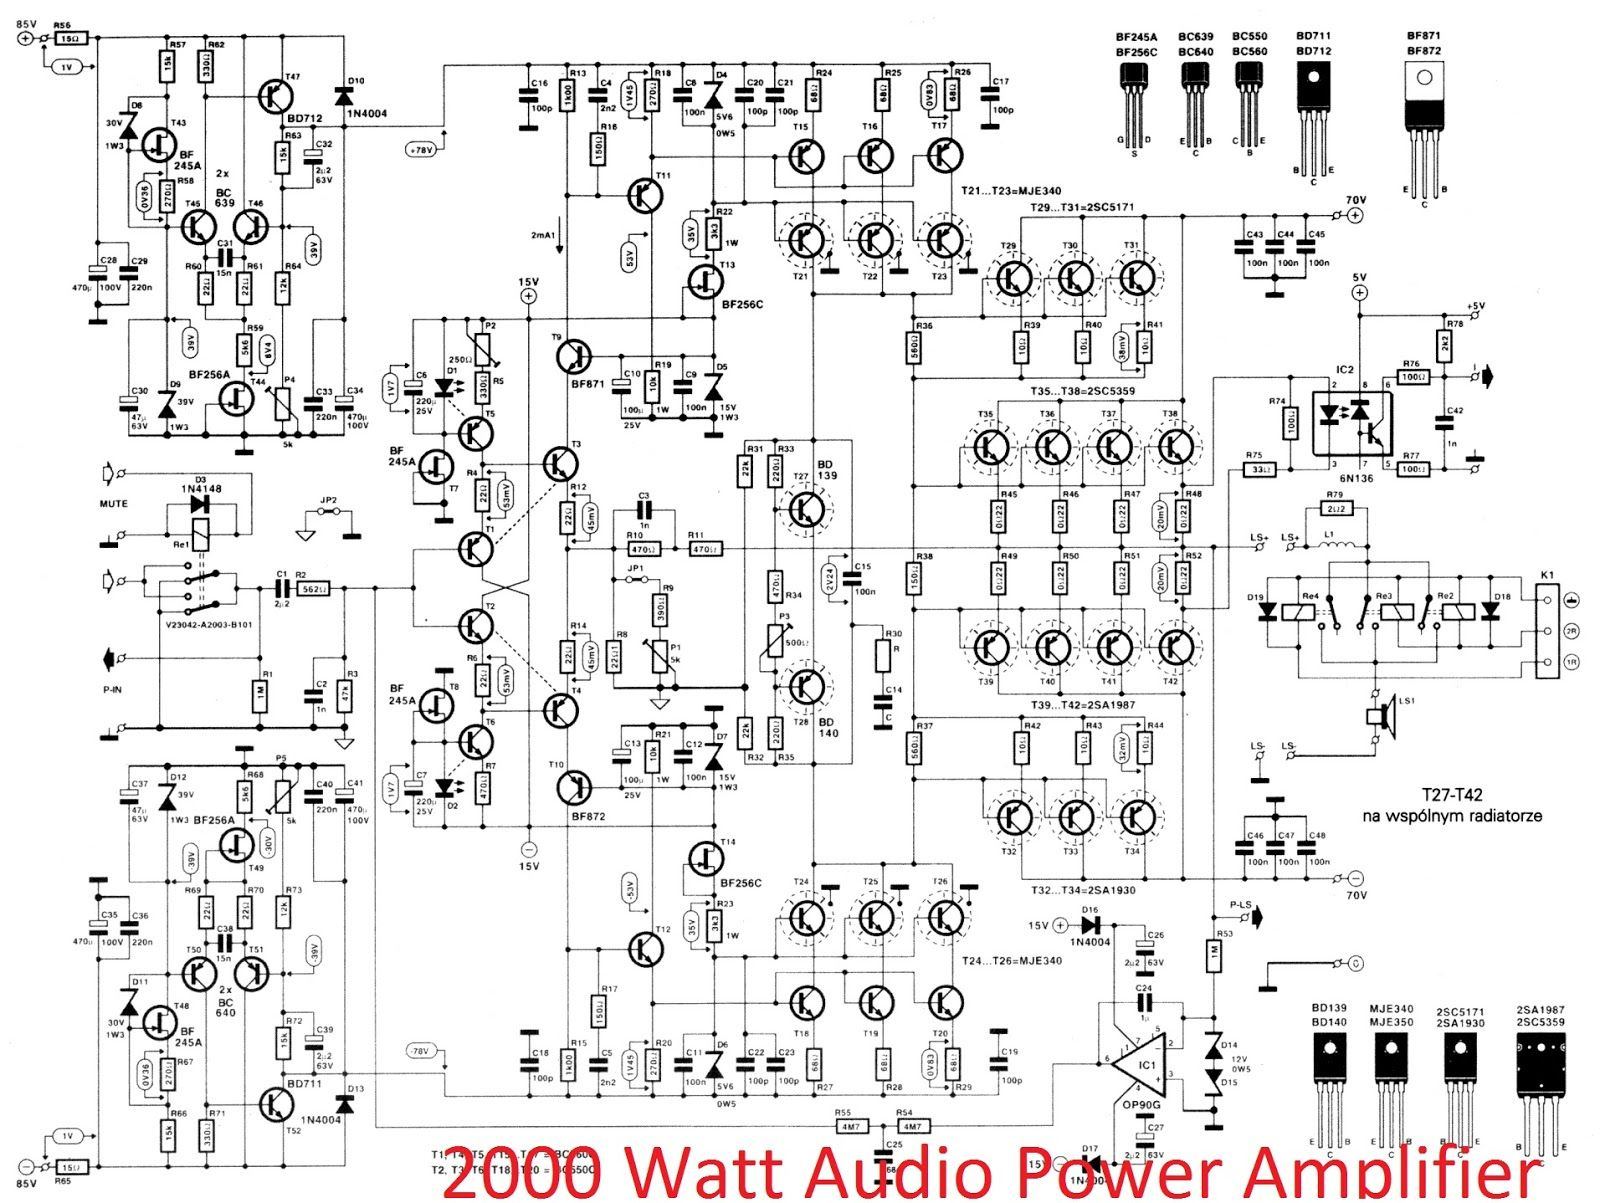 aa2e71ec20761e840db6b86021d81a92 2000 watt high power amplifier 2sc5359 2sa1987 hubby project  at n-0.co